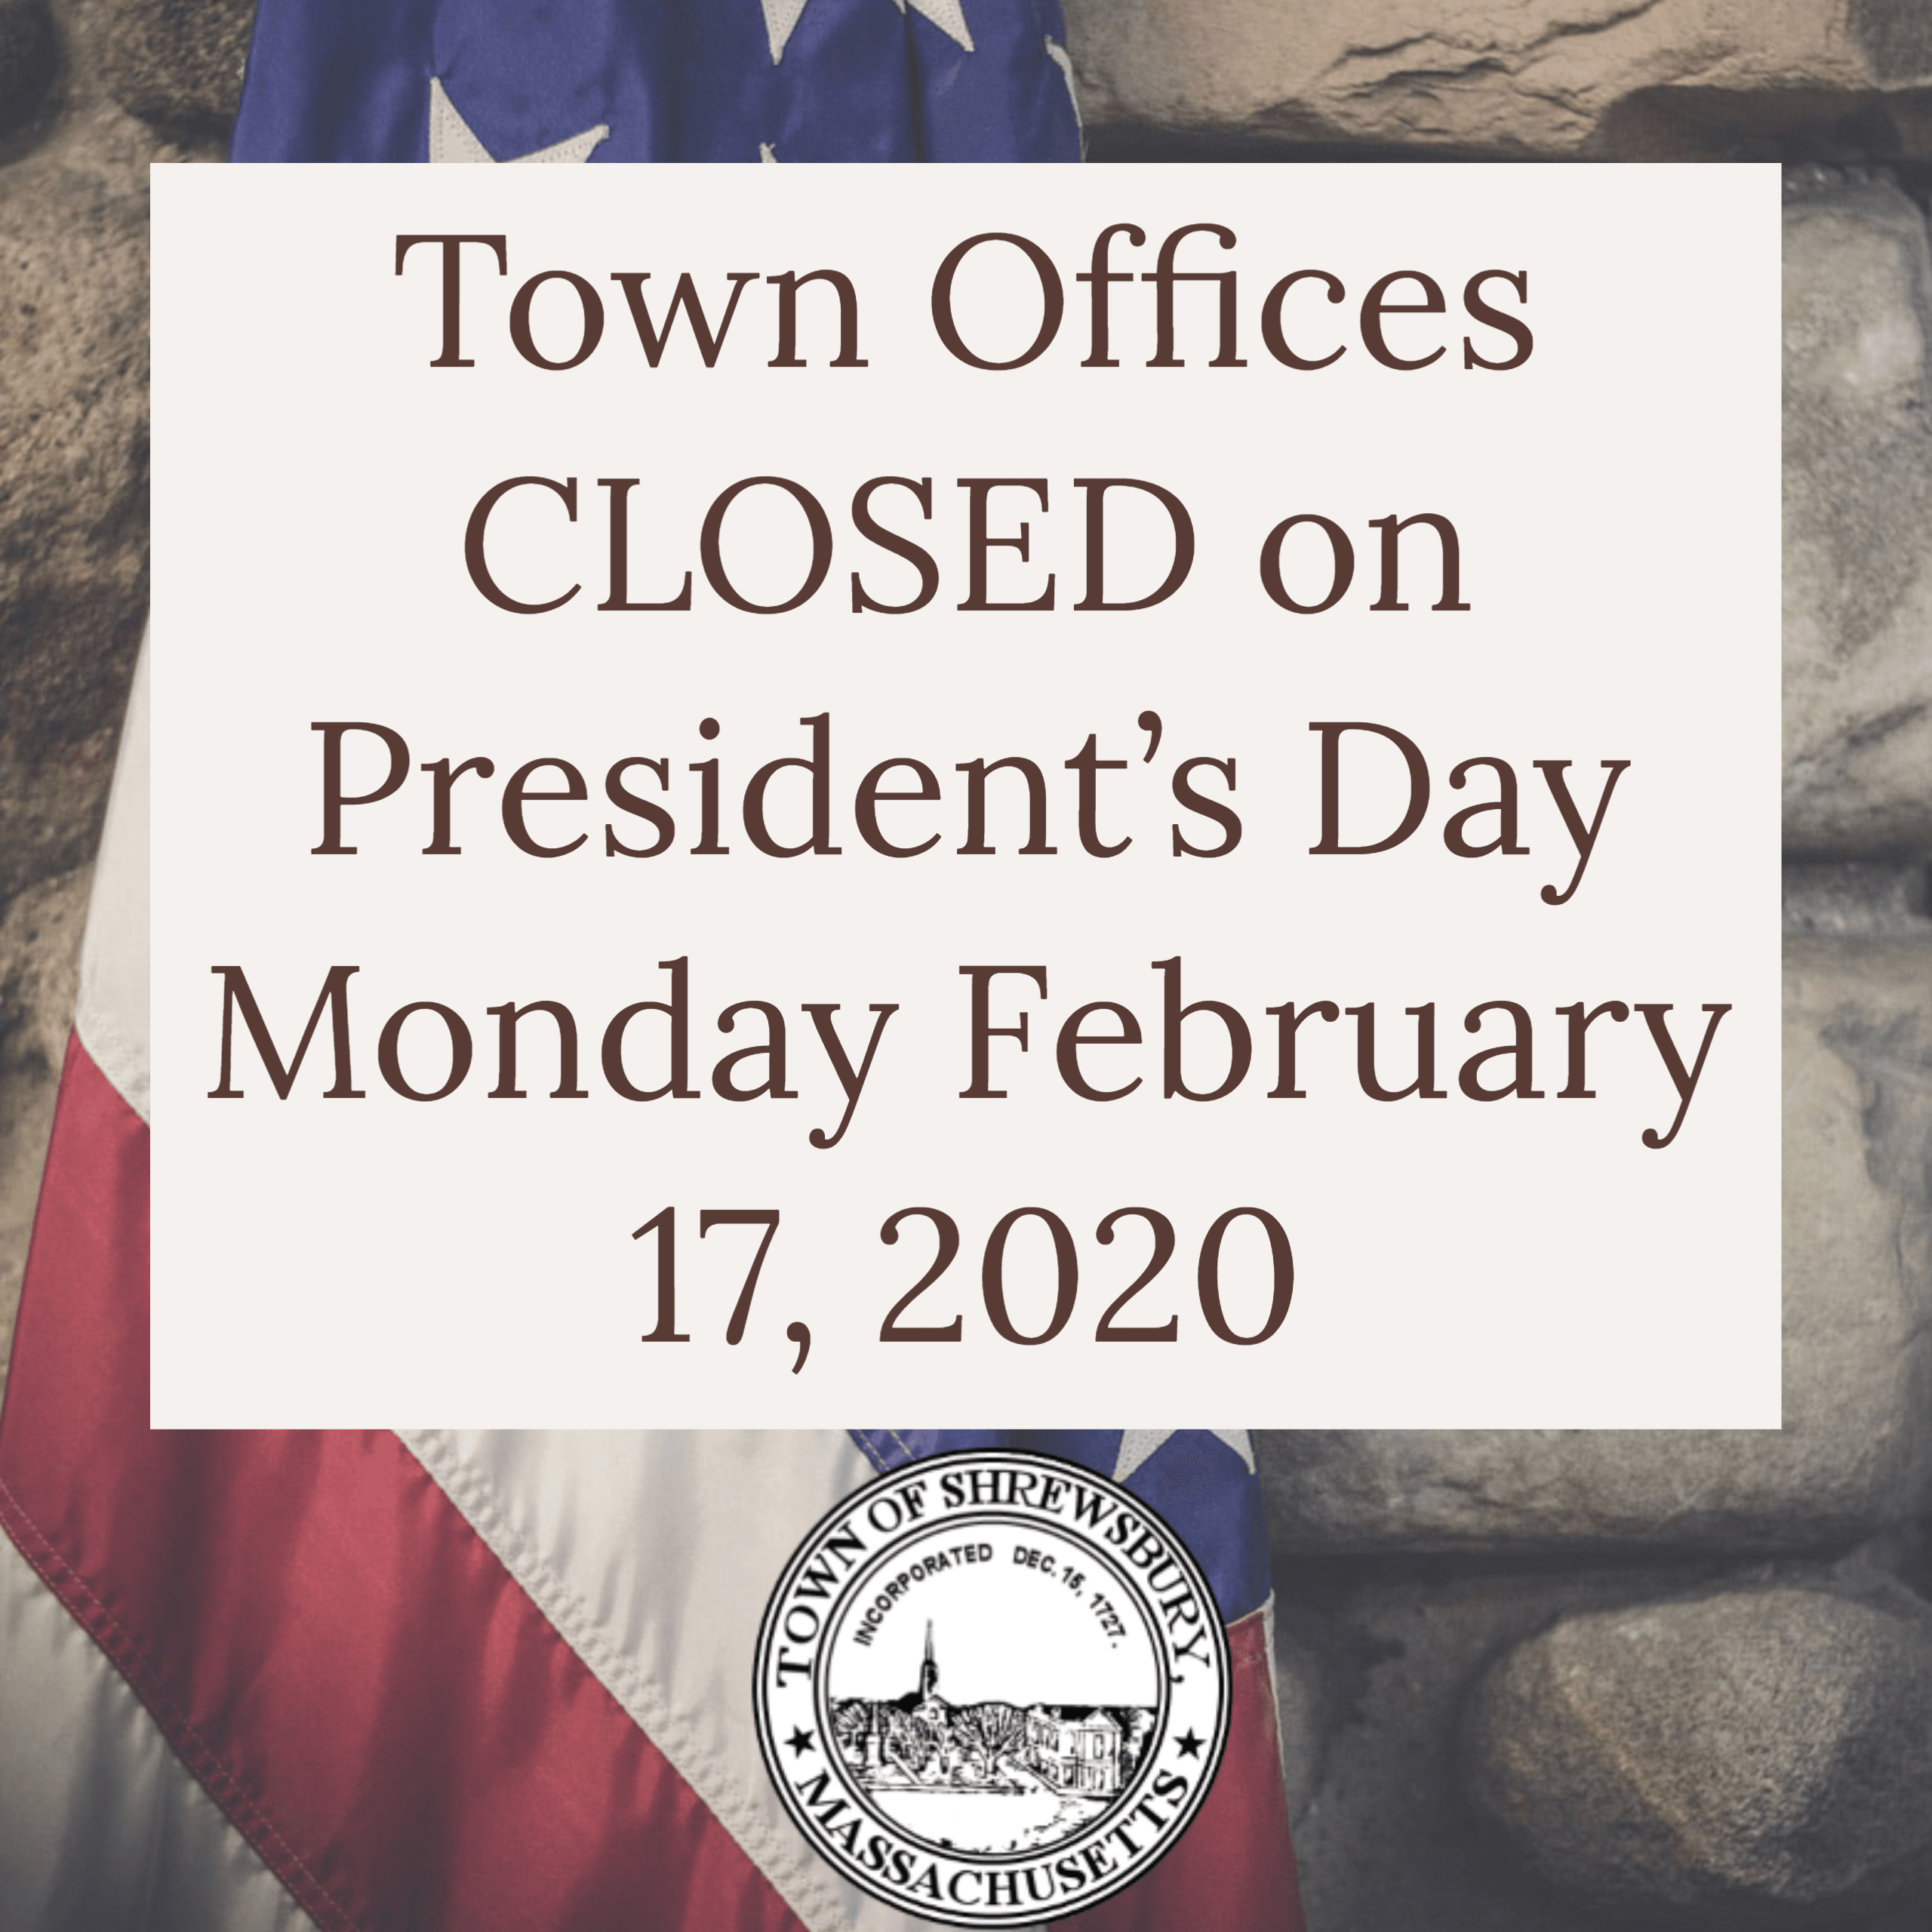 Presidents Day Town Offices Closed